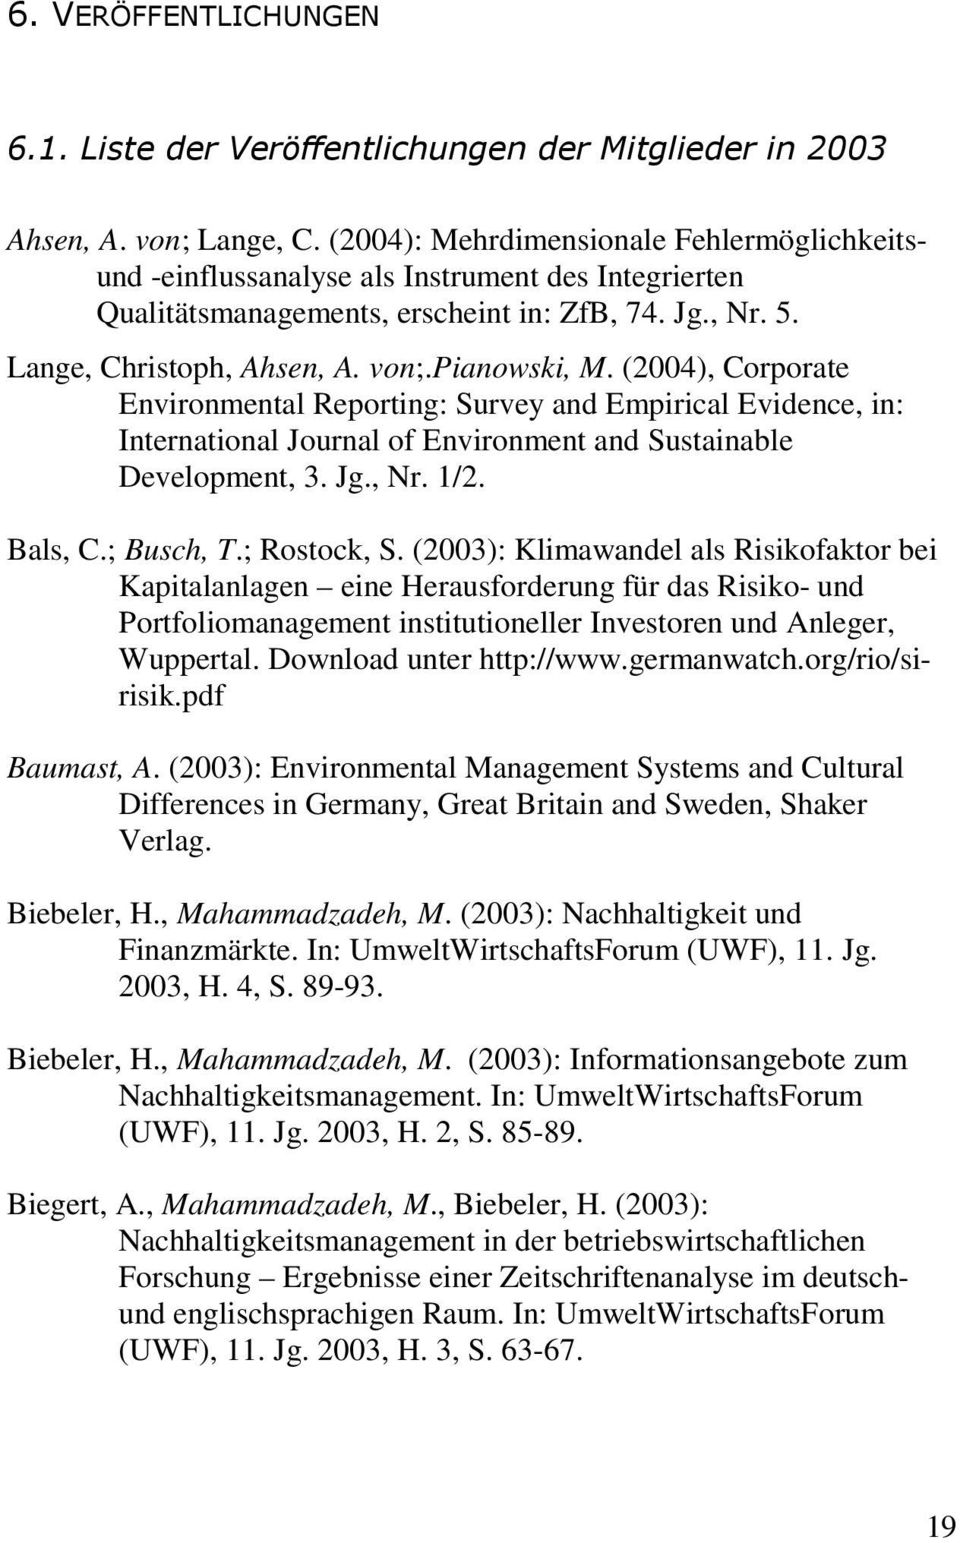 (2004), Corporate Environmental Reporting: Survey and Empirical Evidence, in: International Journal of Environment and Sustainable Development, 3. Jg., Nr. 1/2. Bals, C.; Busch, T.; Rostock, S.